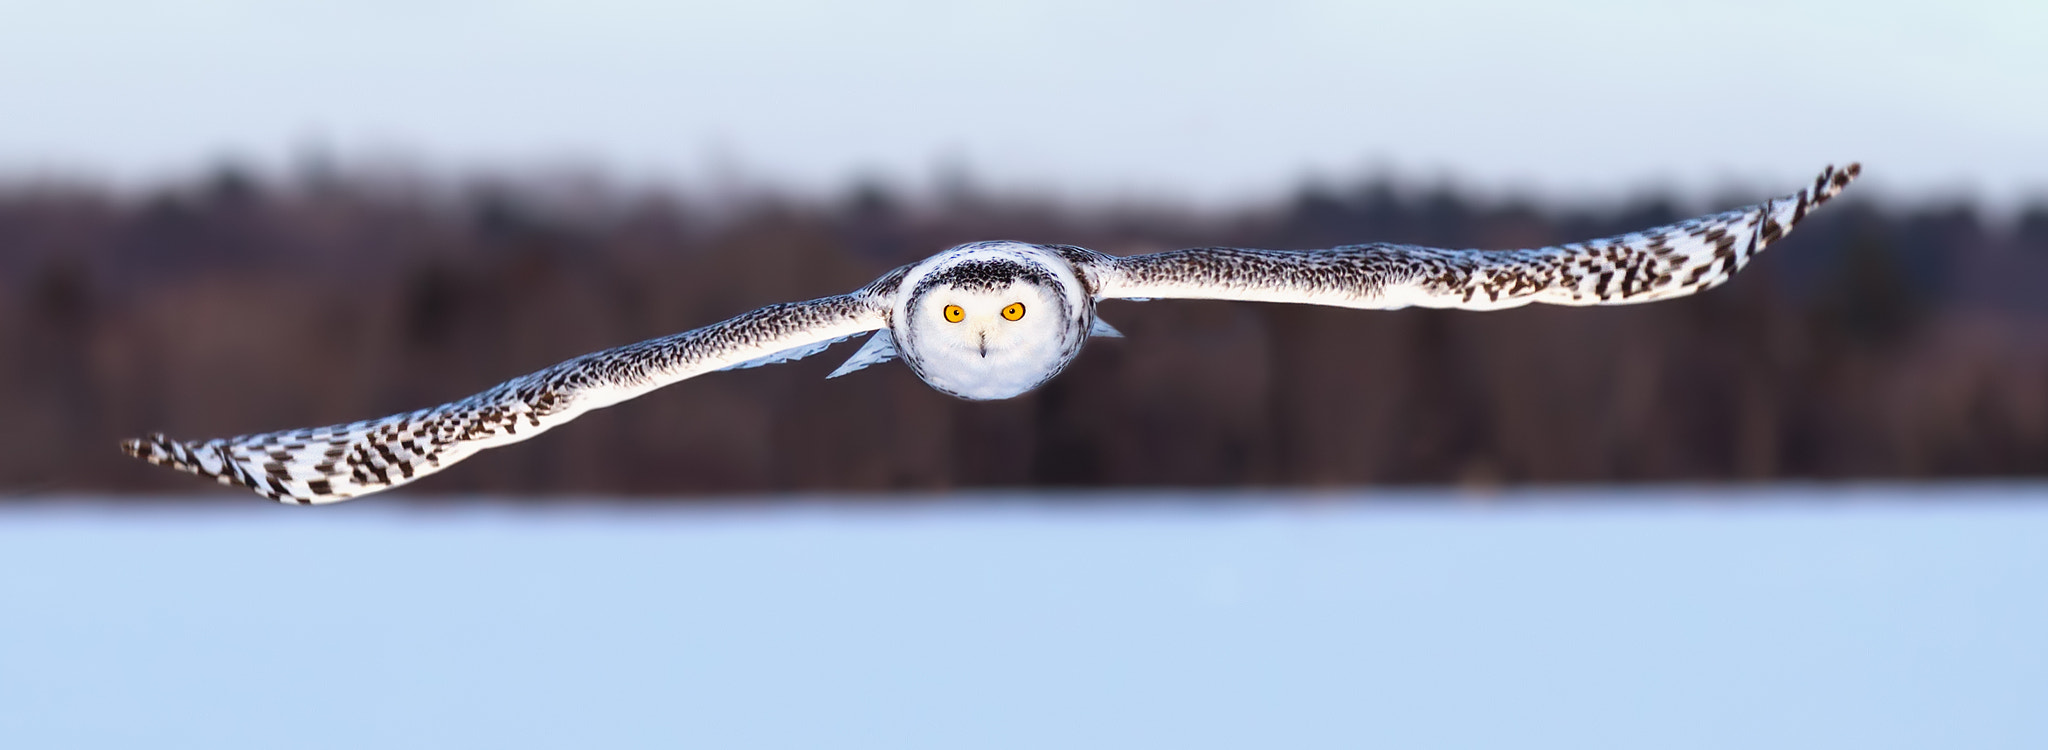 Photograph Snowy Owl by Jim Cumming on 500px